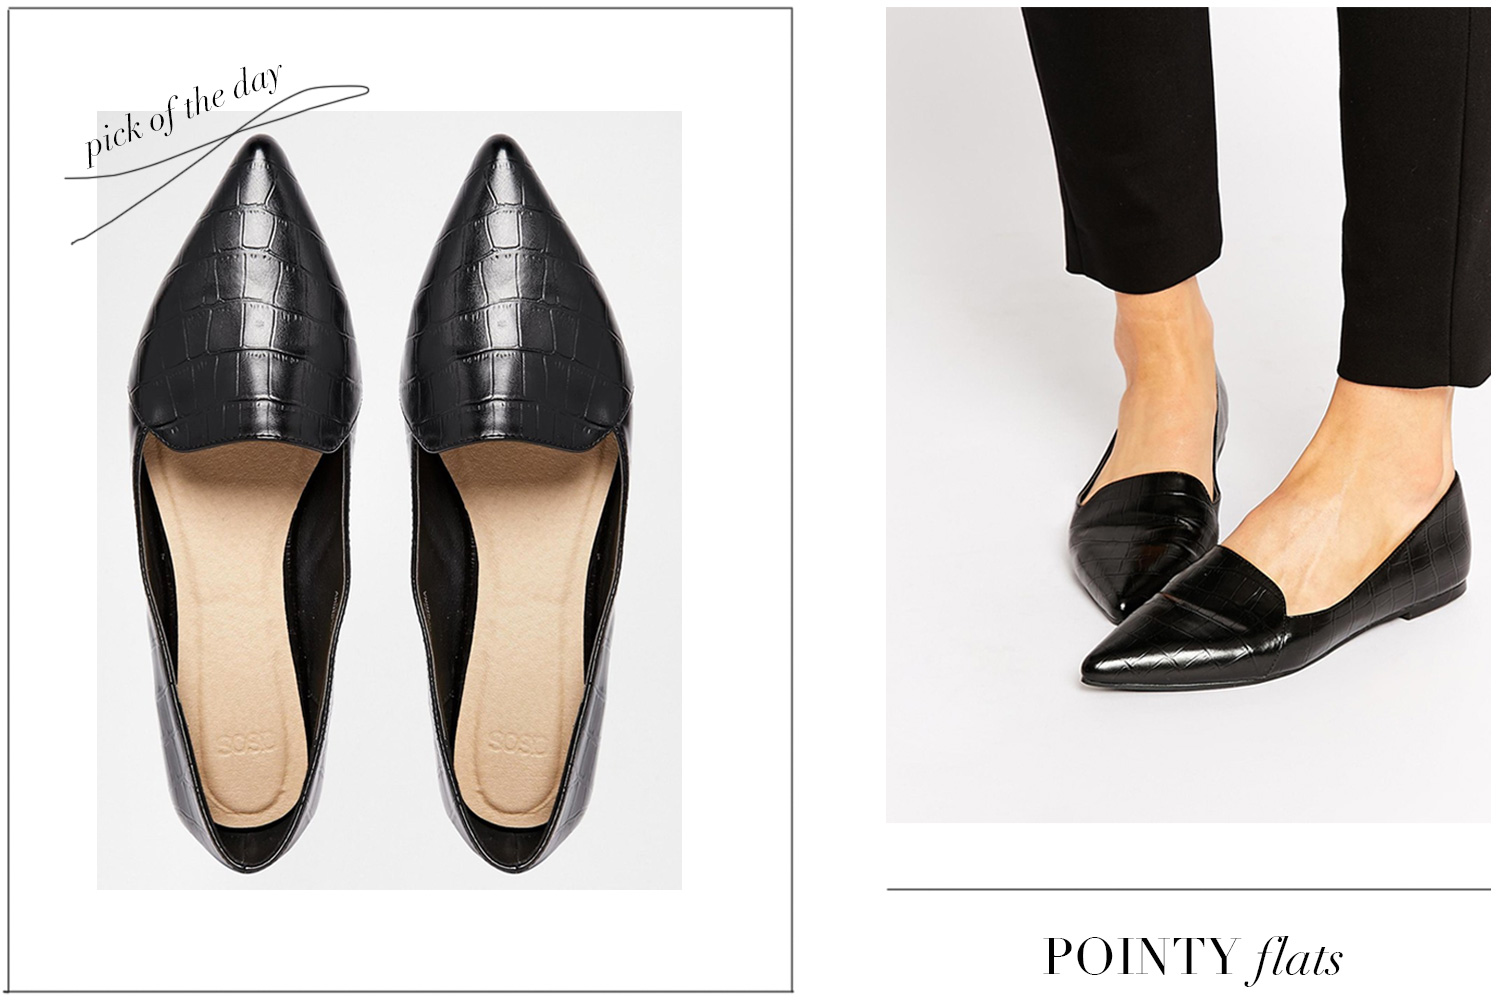 pointy-loafers@2x